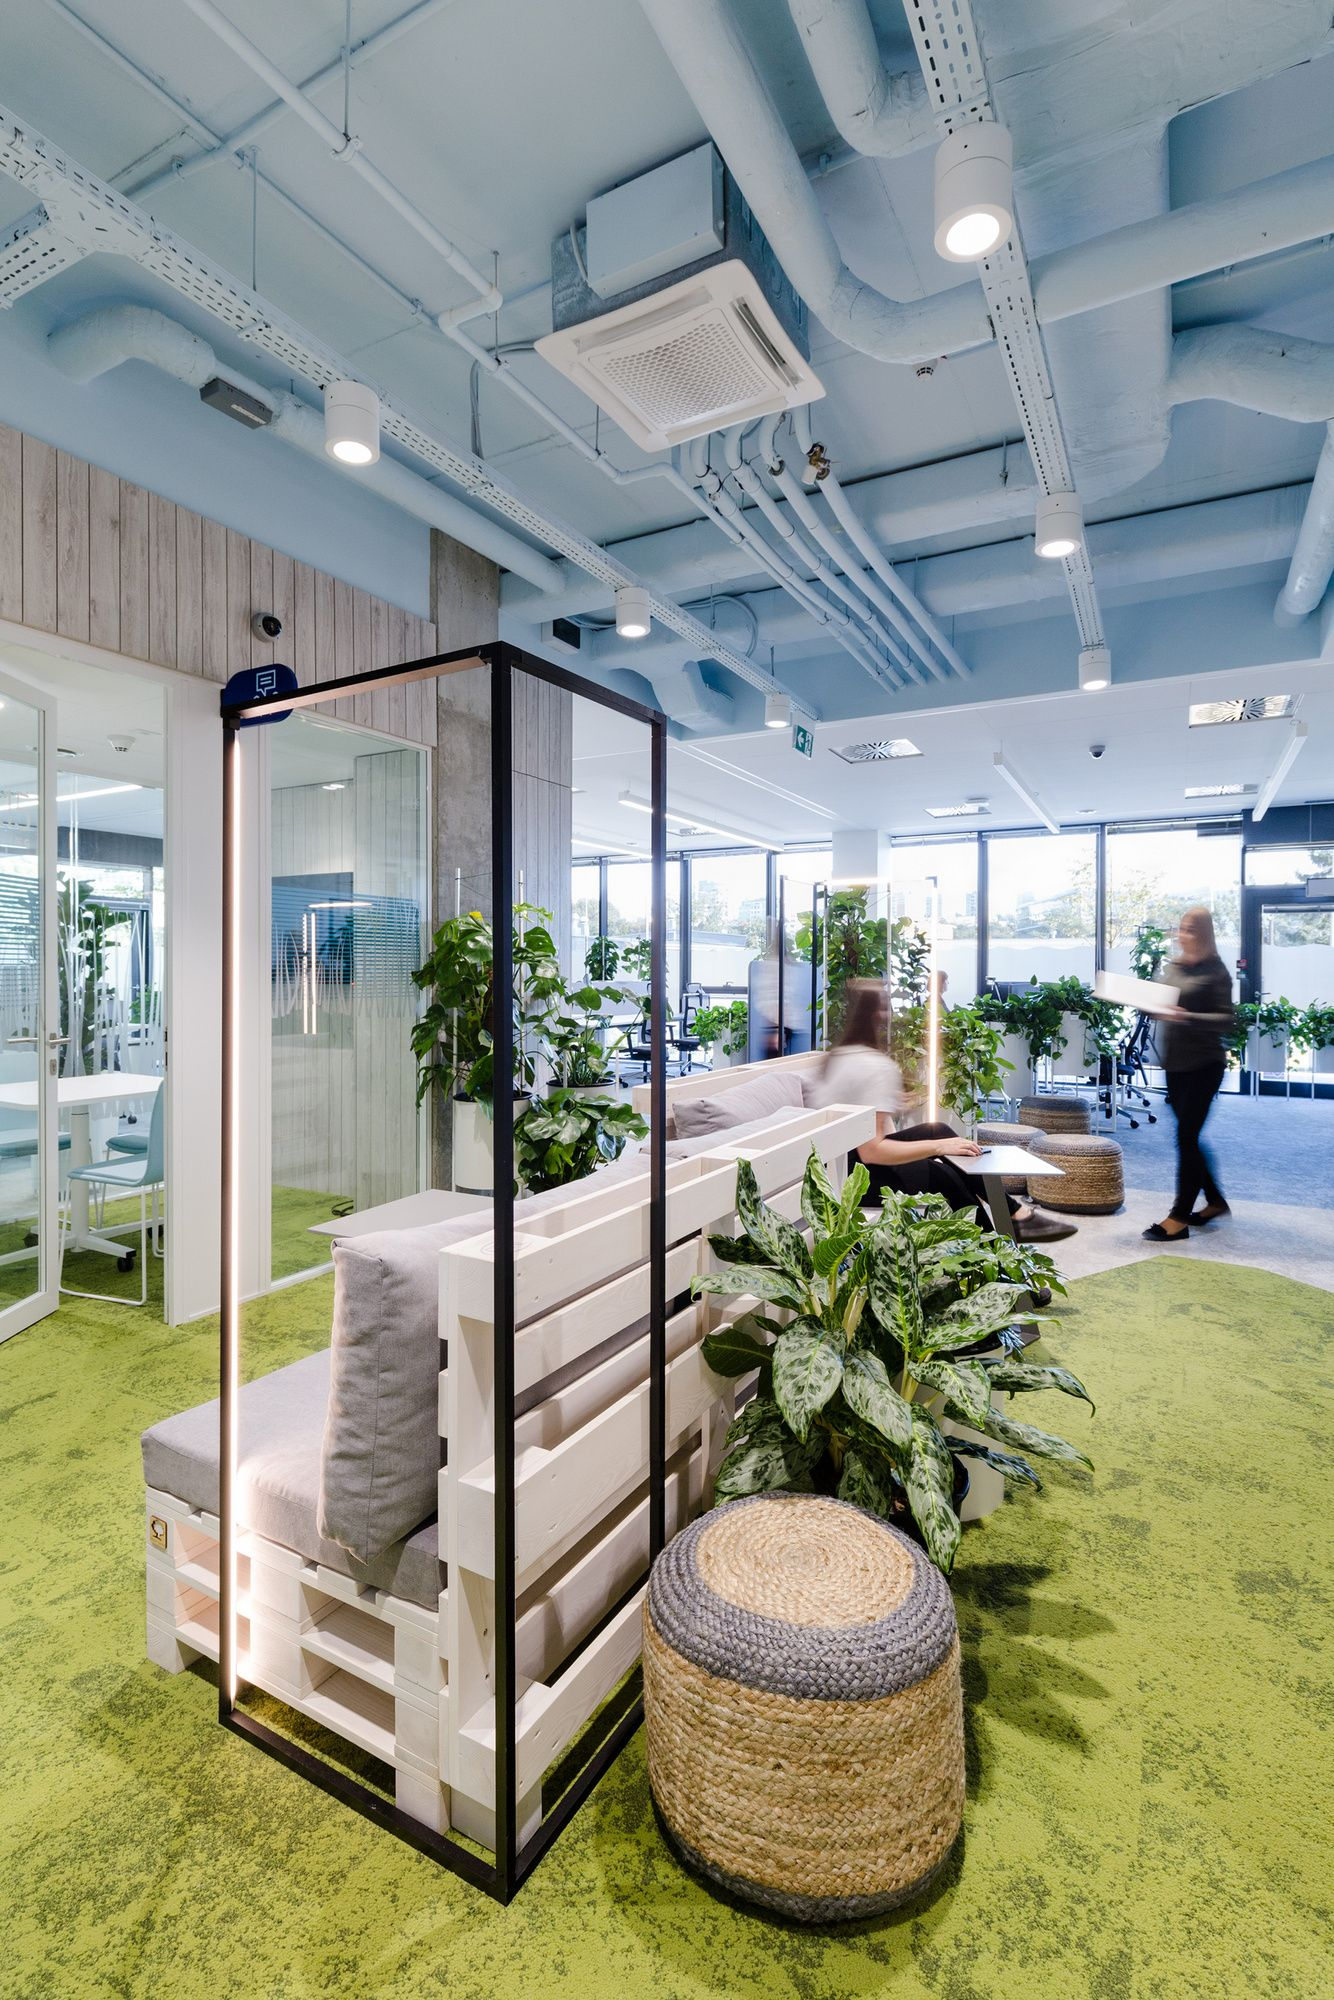 Nordea Greenest Offices – Gdynia, Designed by Workplace, Image Credit - Adam Grzesik